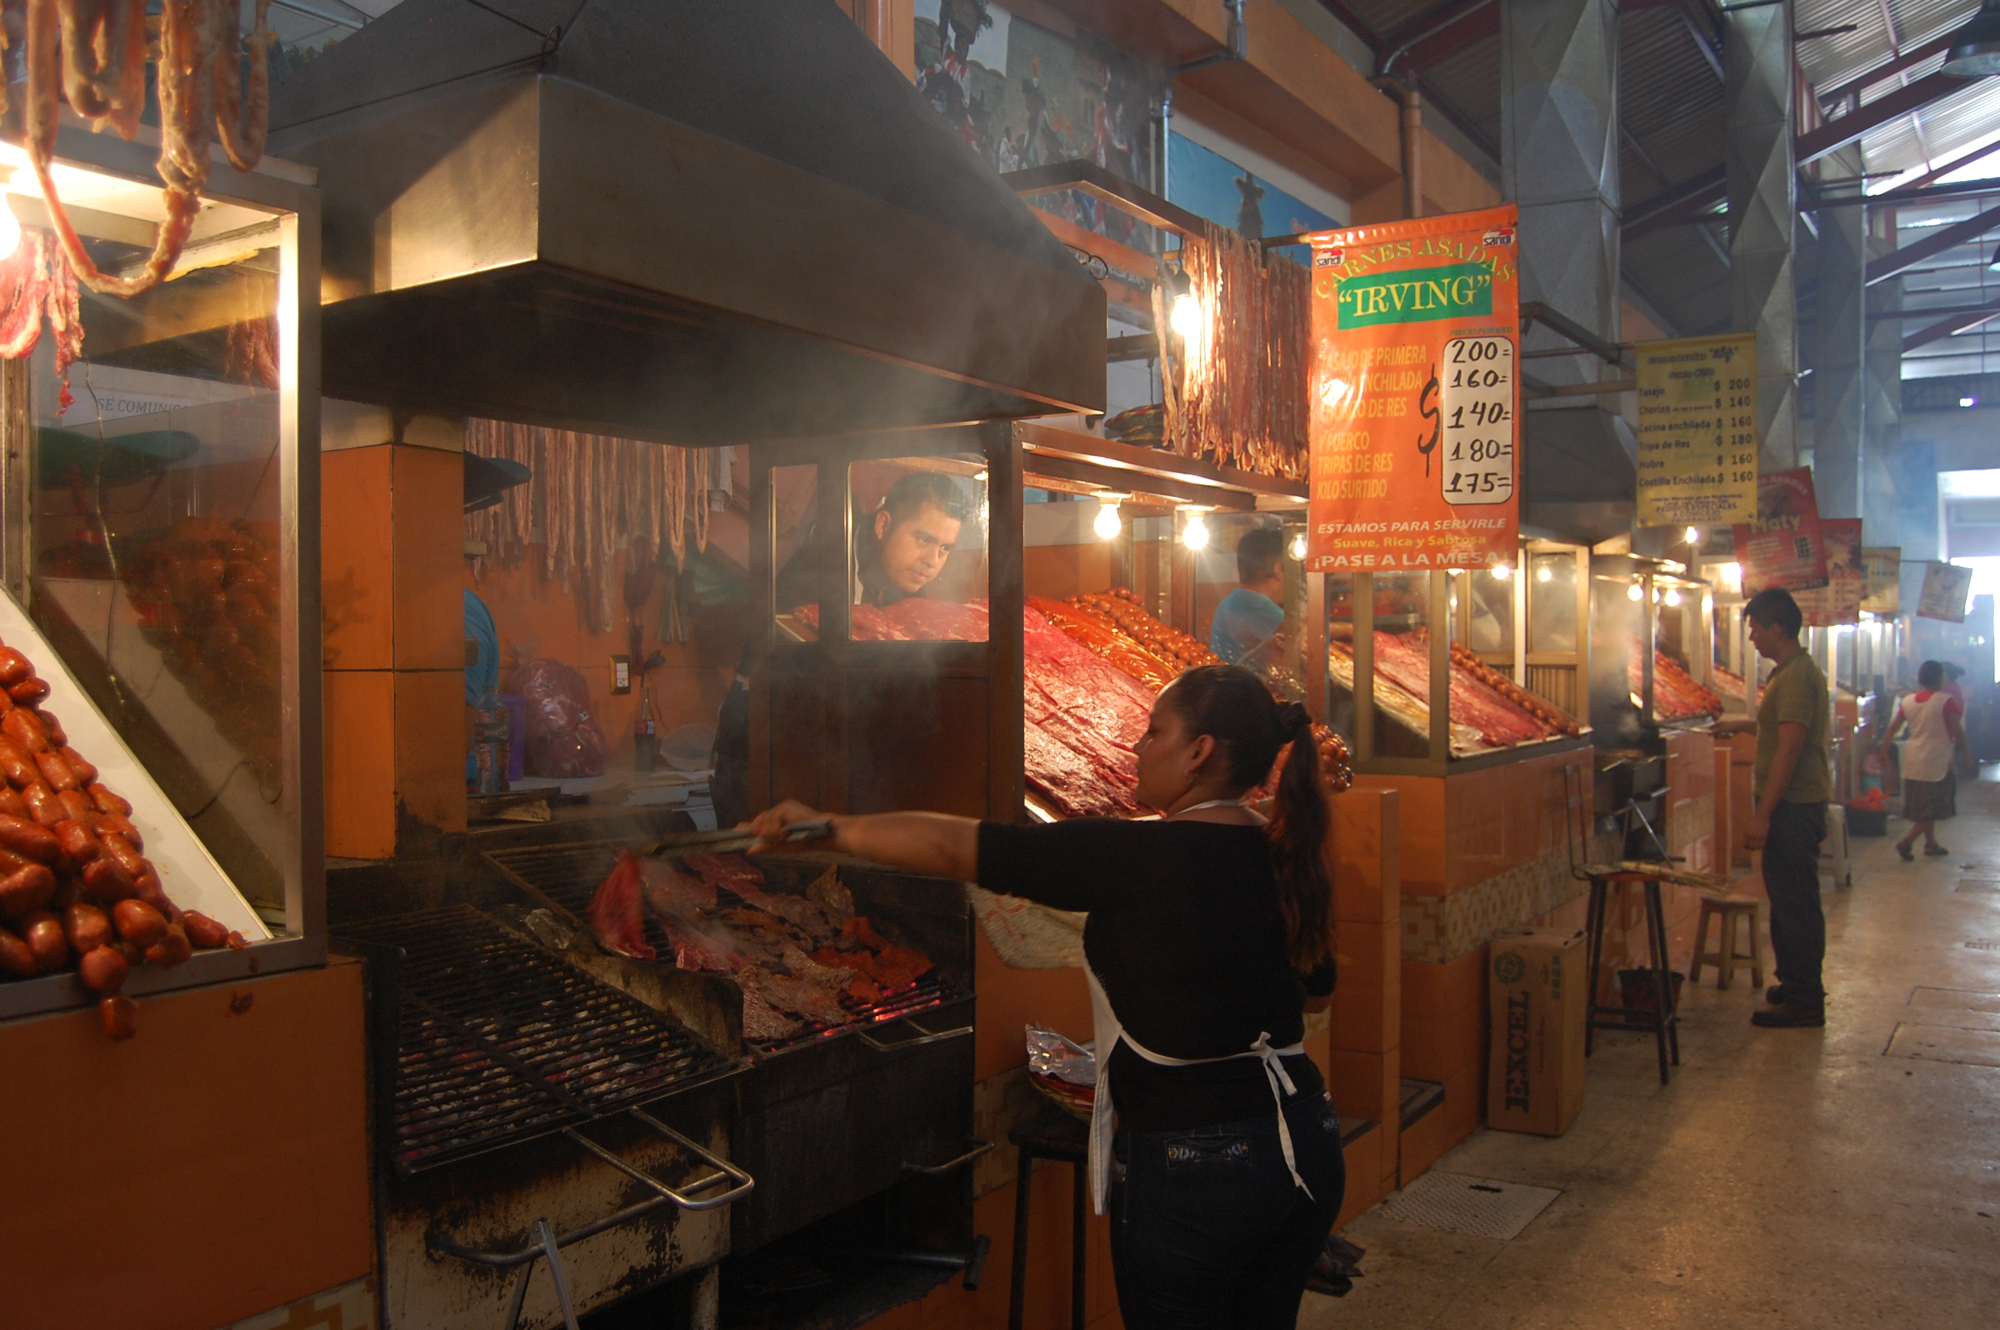 Construction Cuisine Oaxaca Embraces Visitors Via Markets Centuries Old Architecture